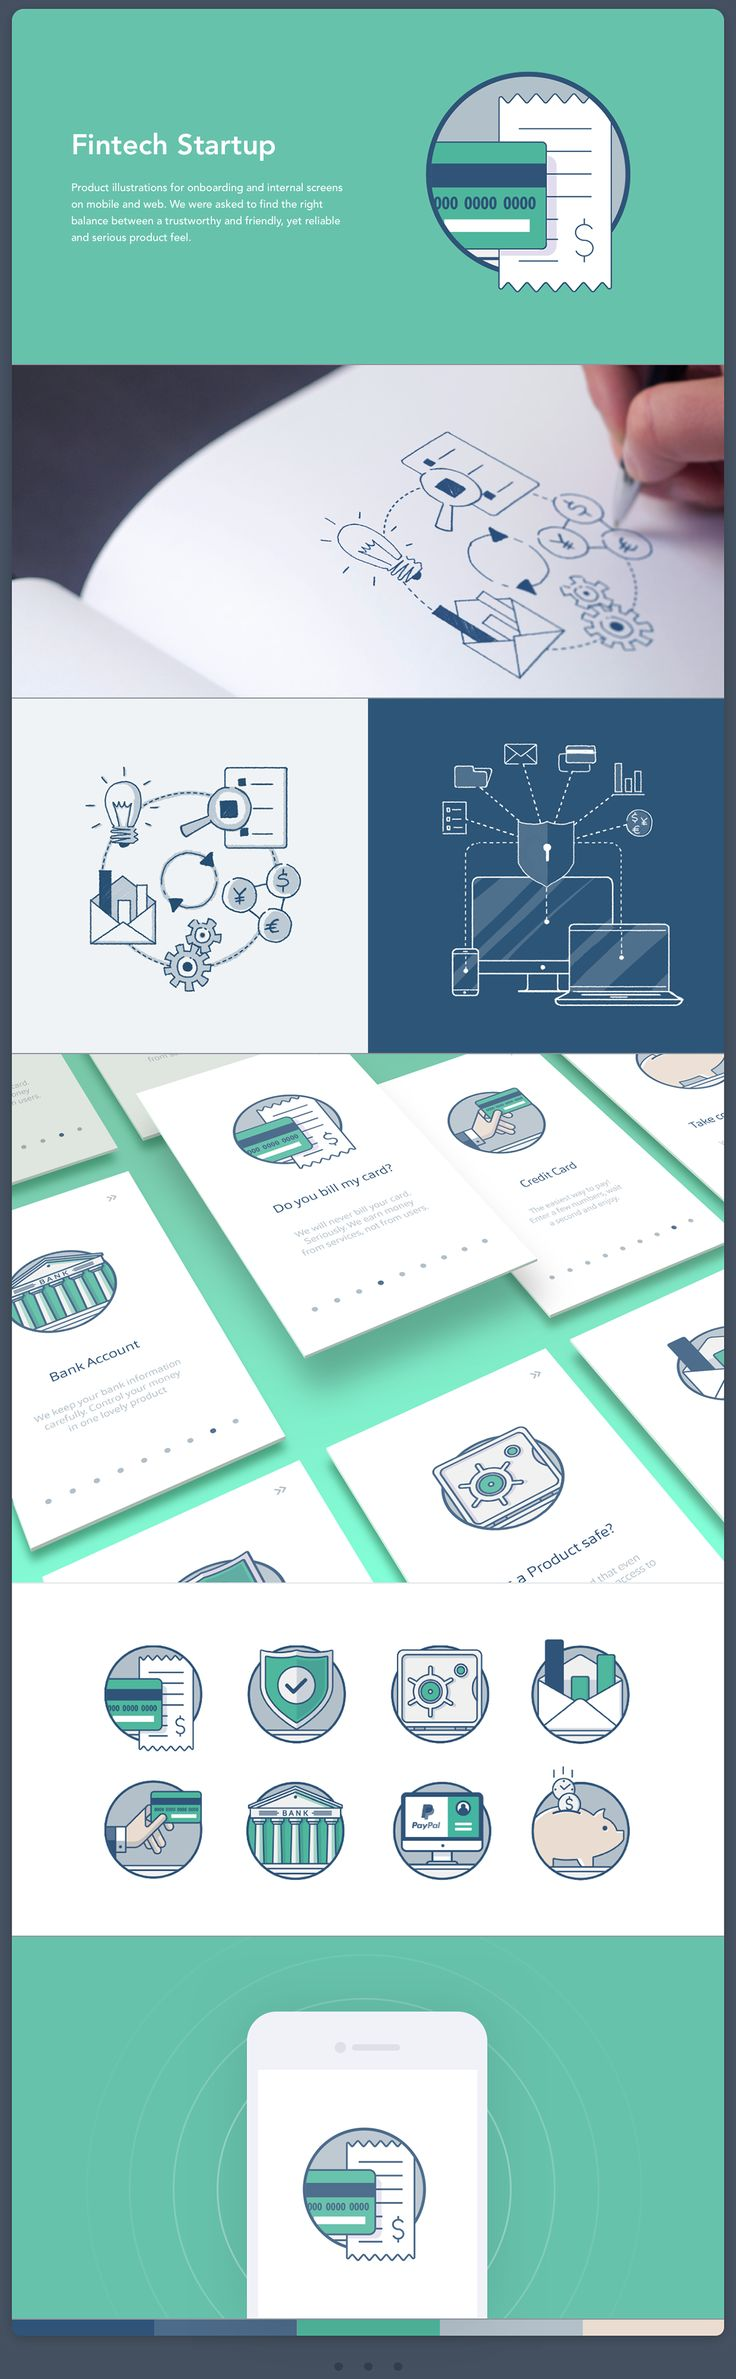 Science vector images over 84 600 vectorstock page 446 - Brand Illustrations Can Simplify Complex Concepts And Express Compelling Product Stories They Are An Excellent